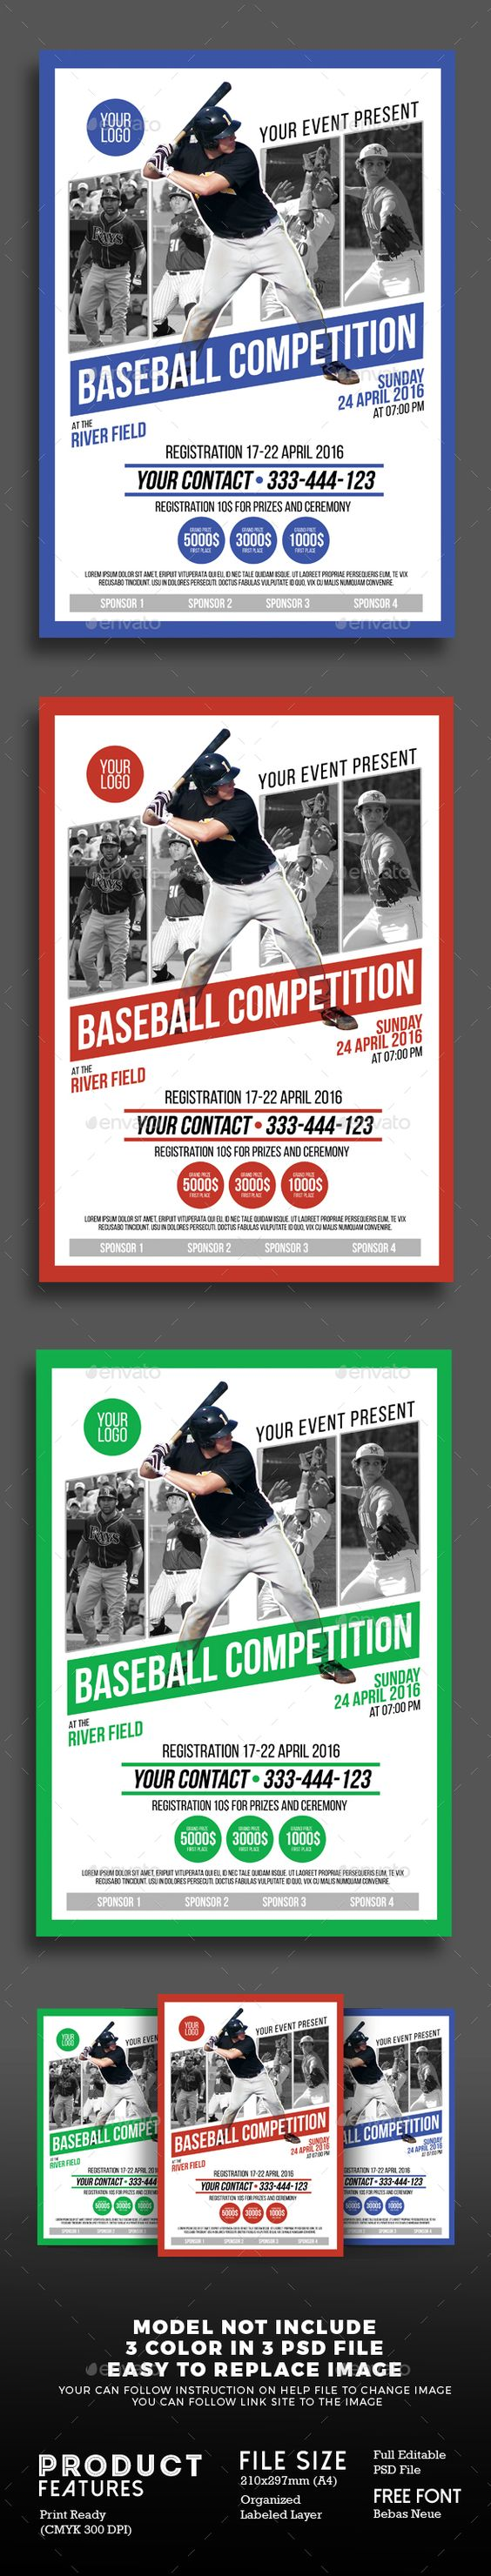 Baseball Competition Poster Flyer Template PSD. Download here: http://graphicriver.net/item/baseball-competition-poster-flyer/15737234?ref=ksioks